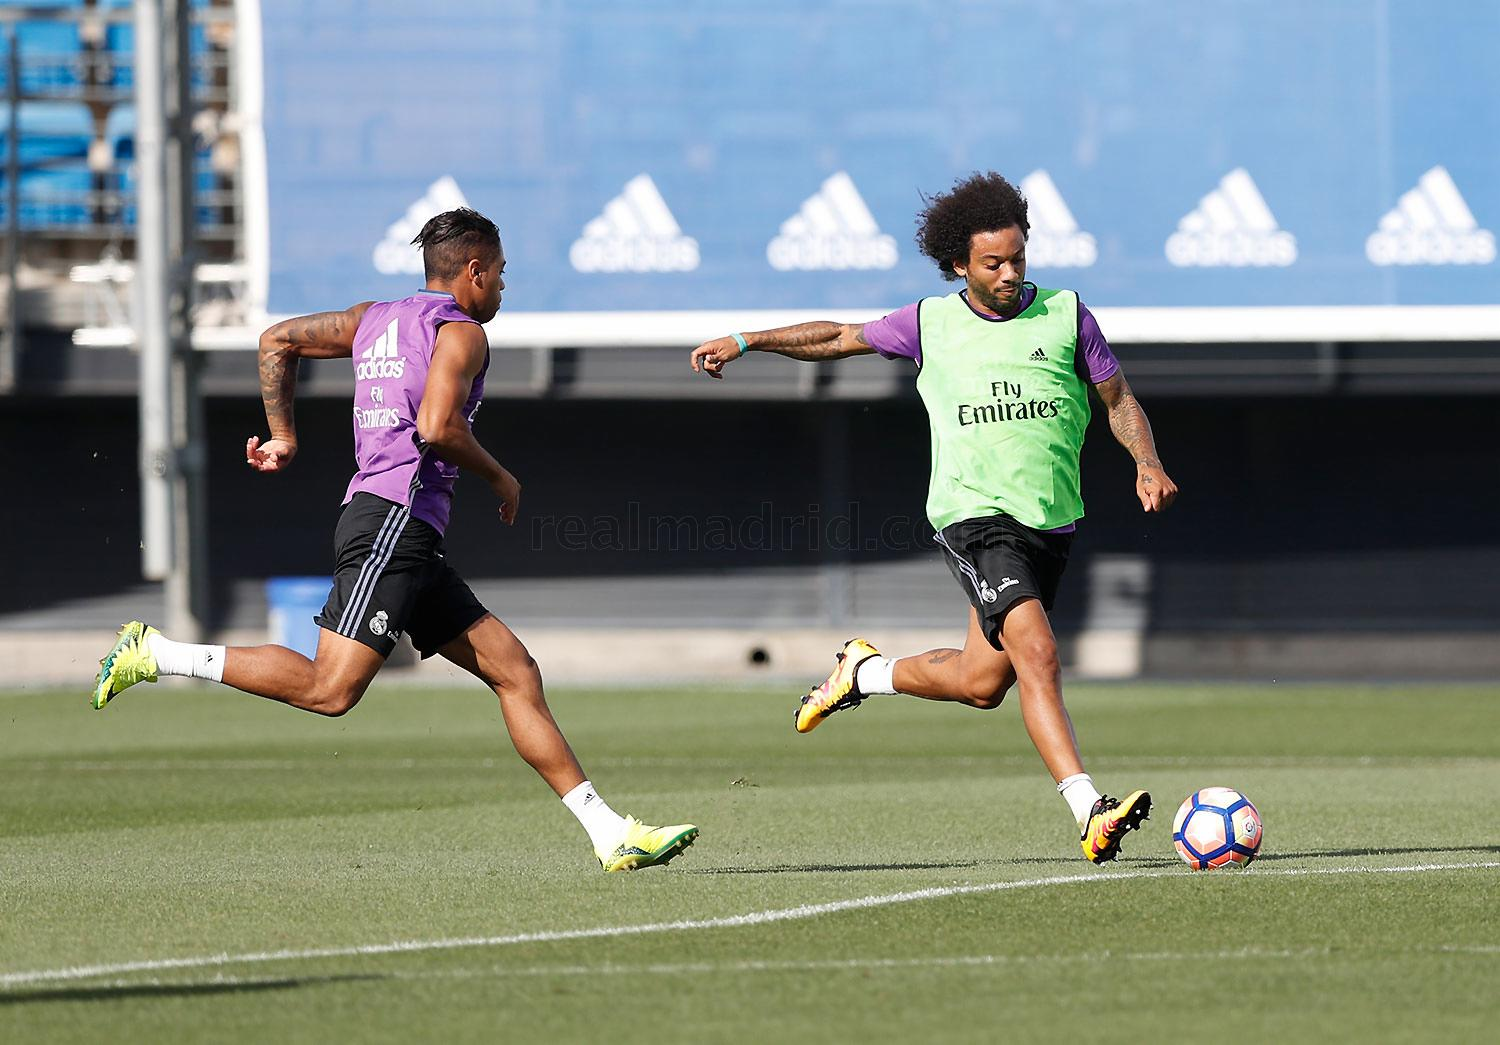 Real Madrid - Entrenamiento del Real Madrid - 25-08-2016